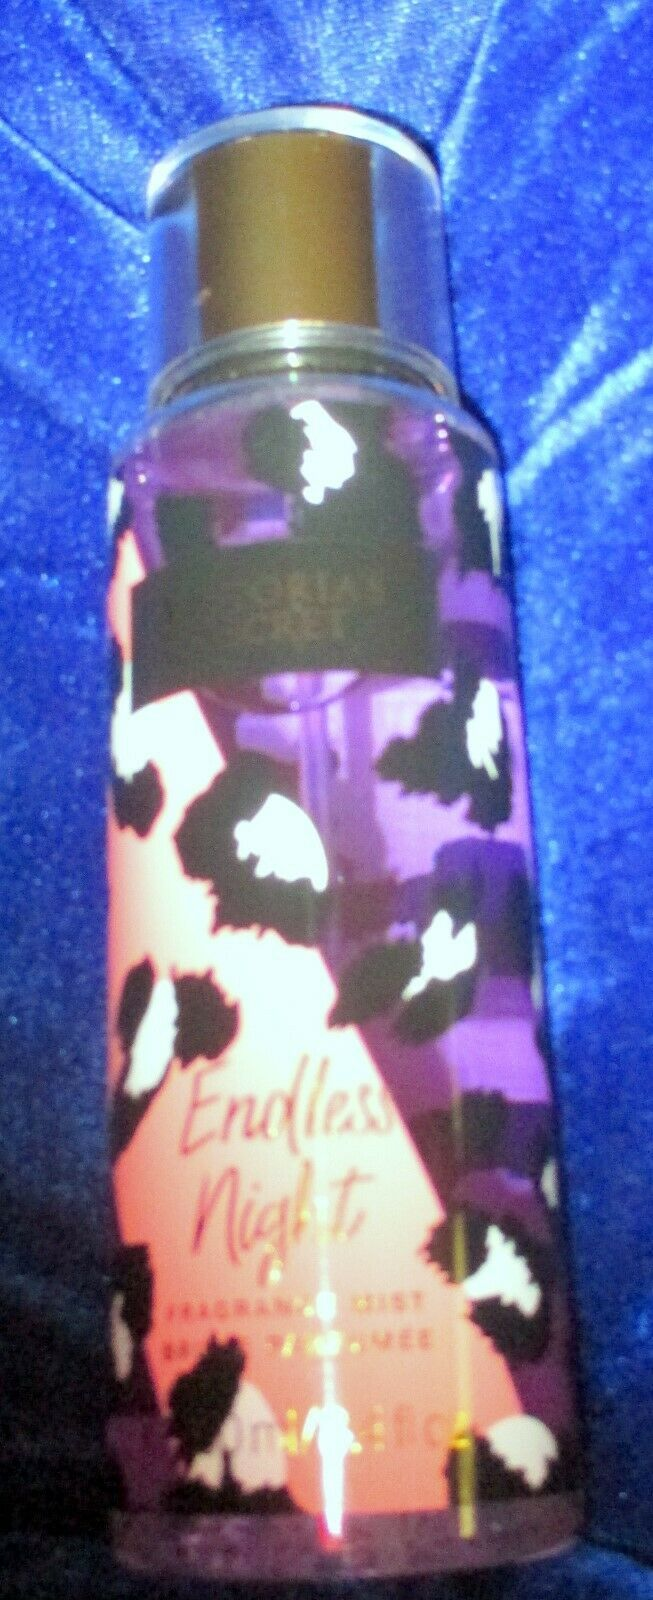 Primary image for Victoria's Secret 'Endless Night' Fragrance Mist 8.4oz/250ml